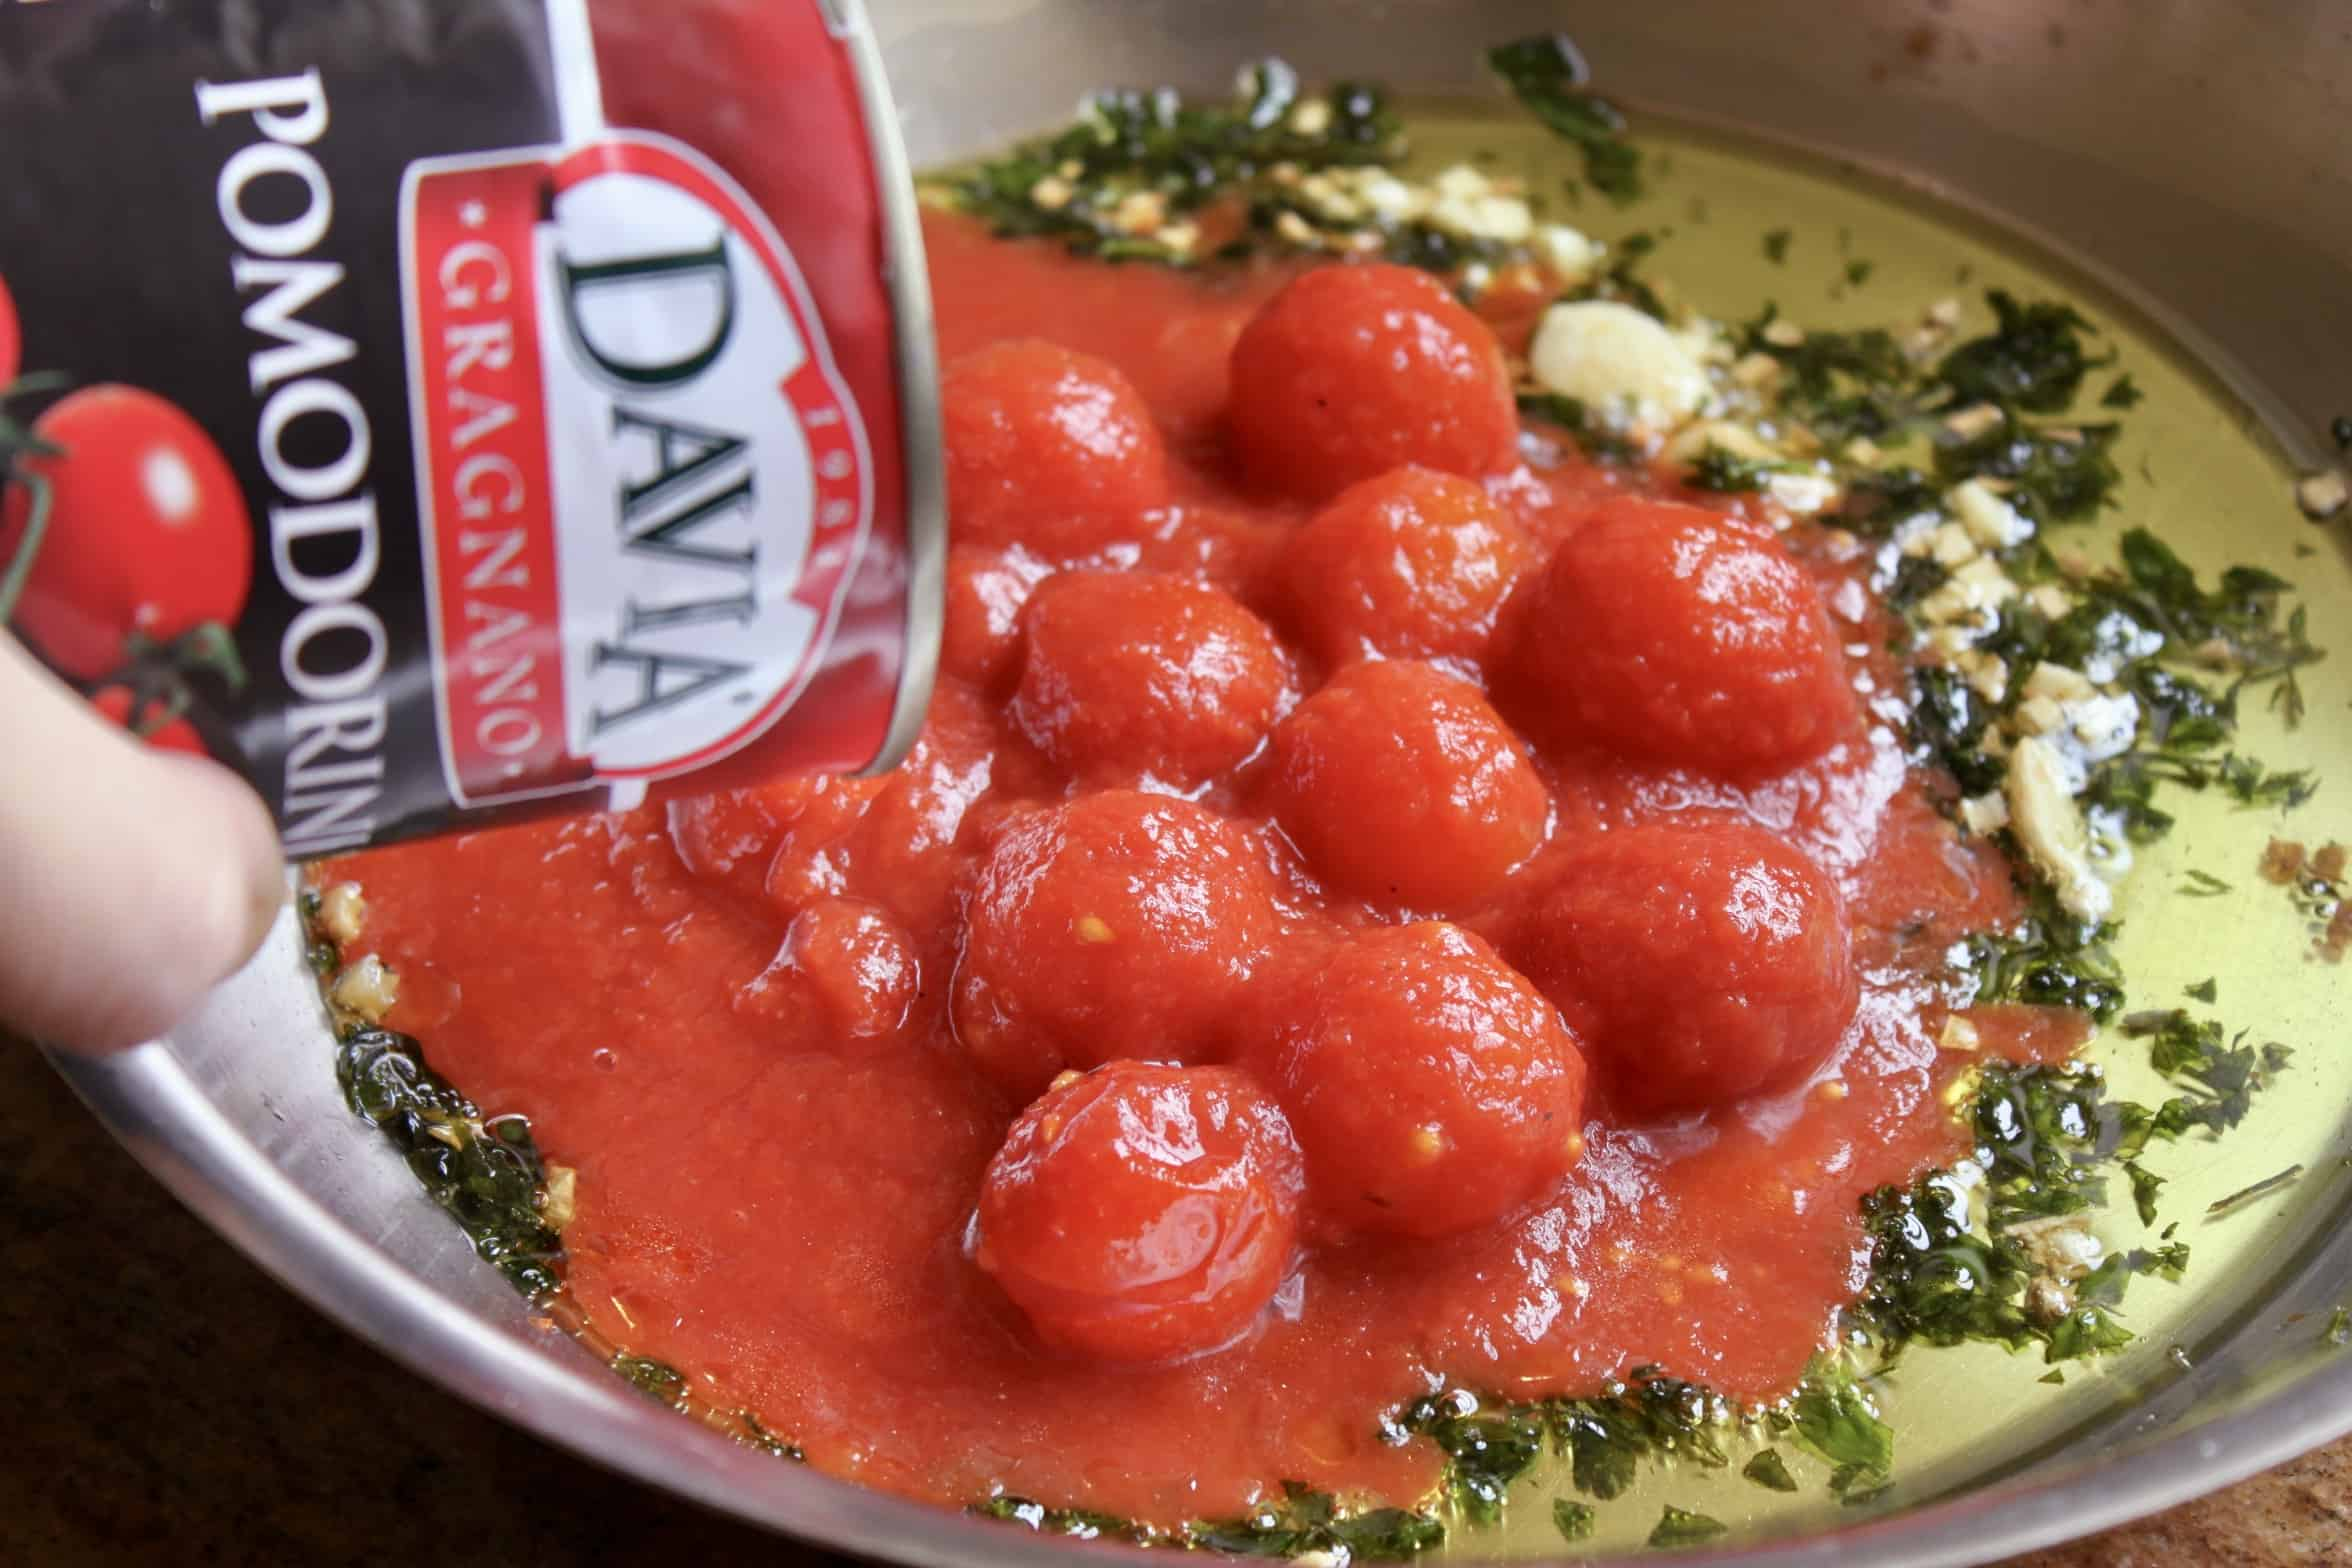 pouring davia tomatoes in a pan